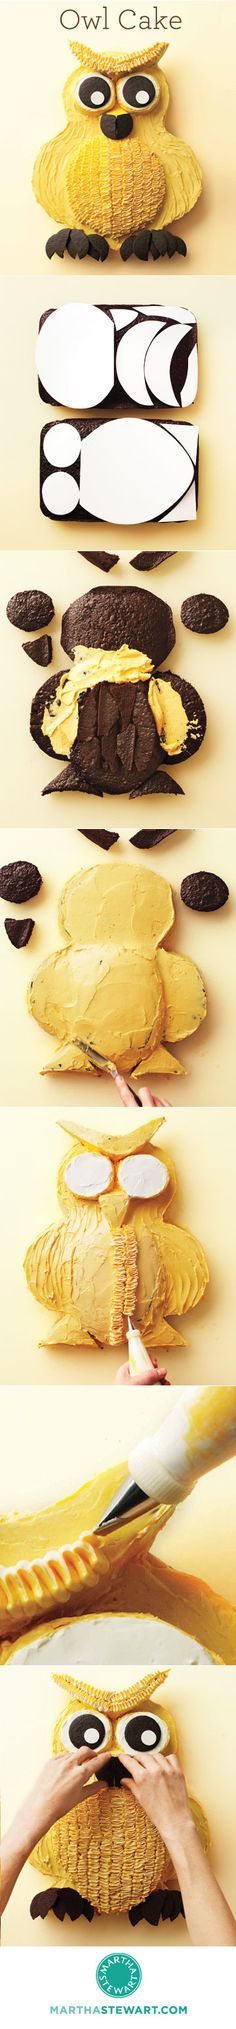 Owl Cake How-To